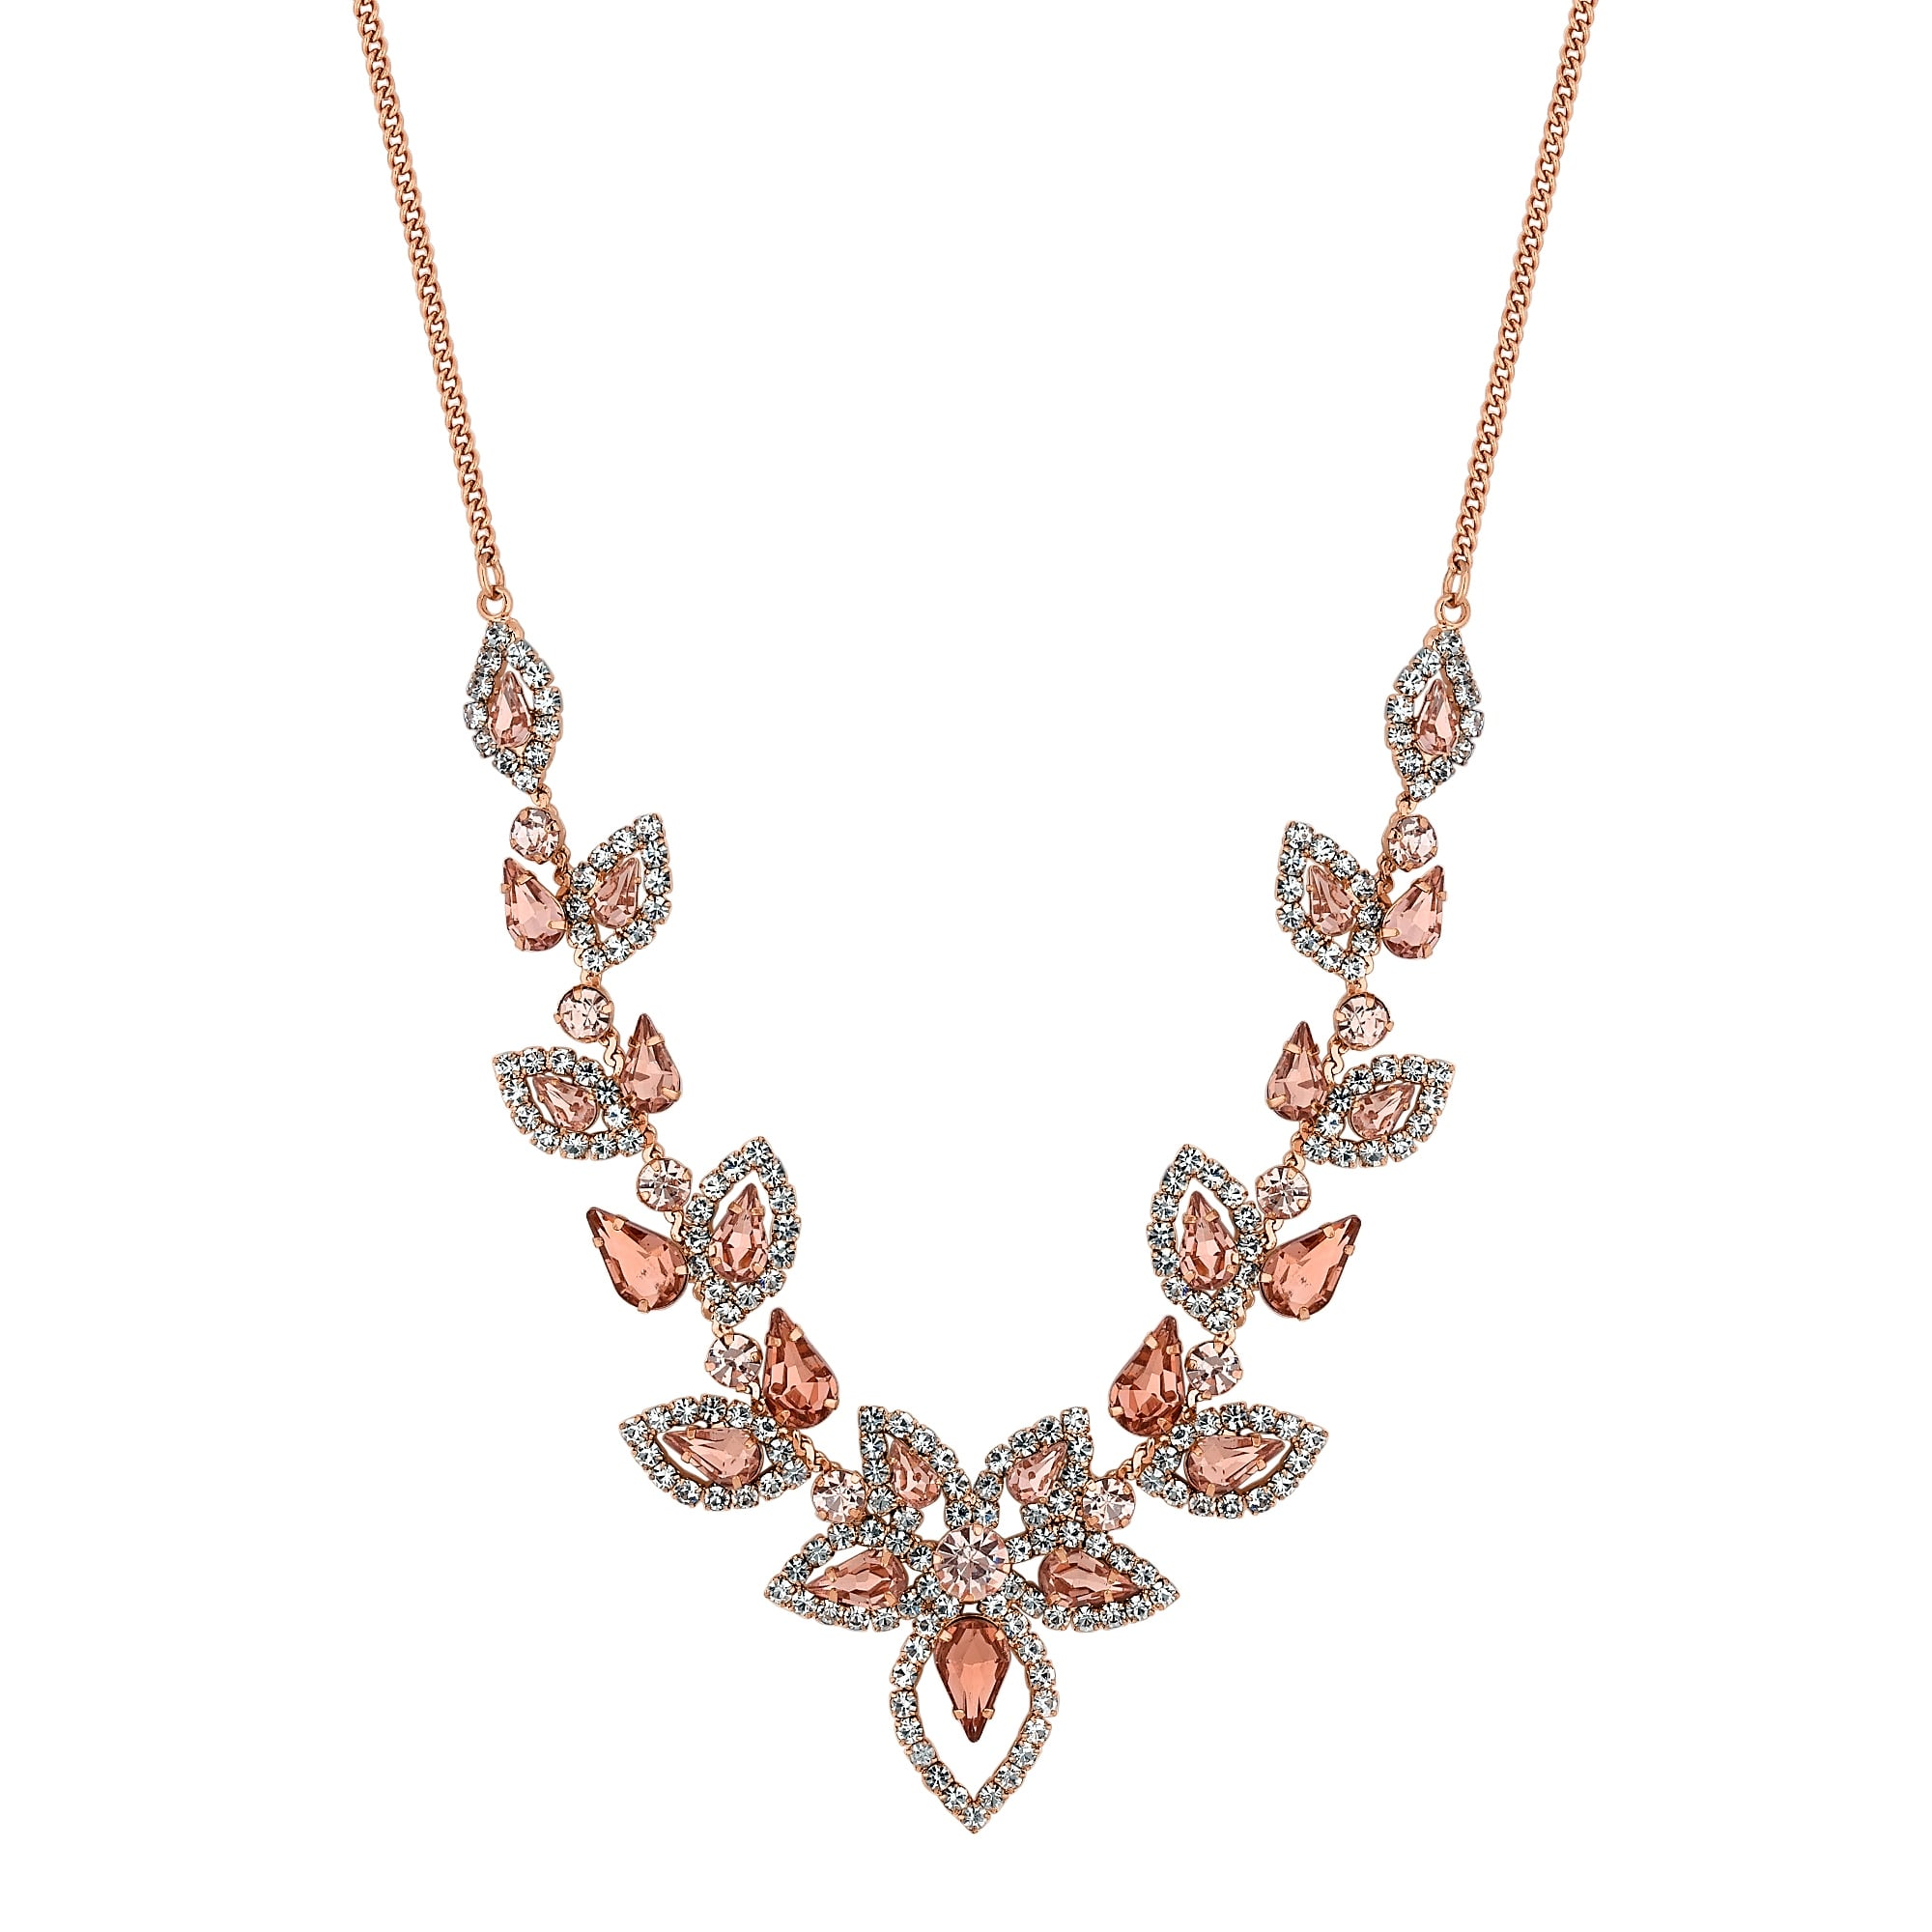 rickis pink necklace hi res glitter statement stone rhodium hot